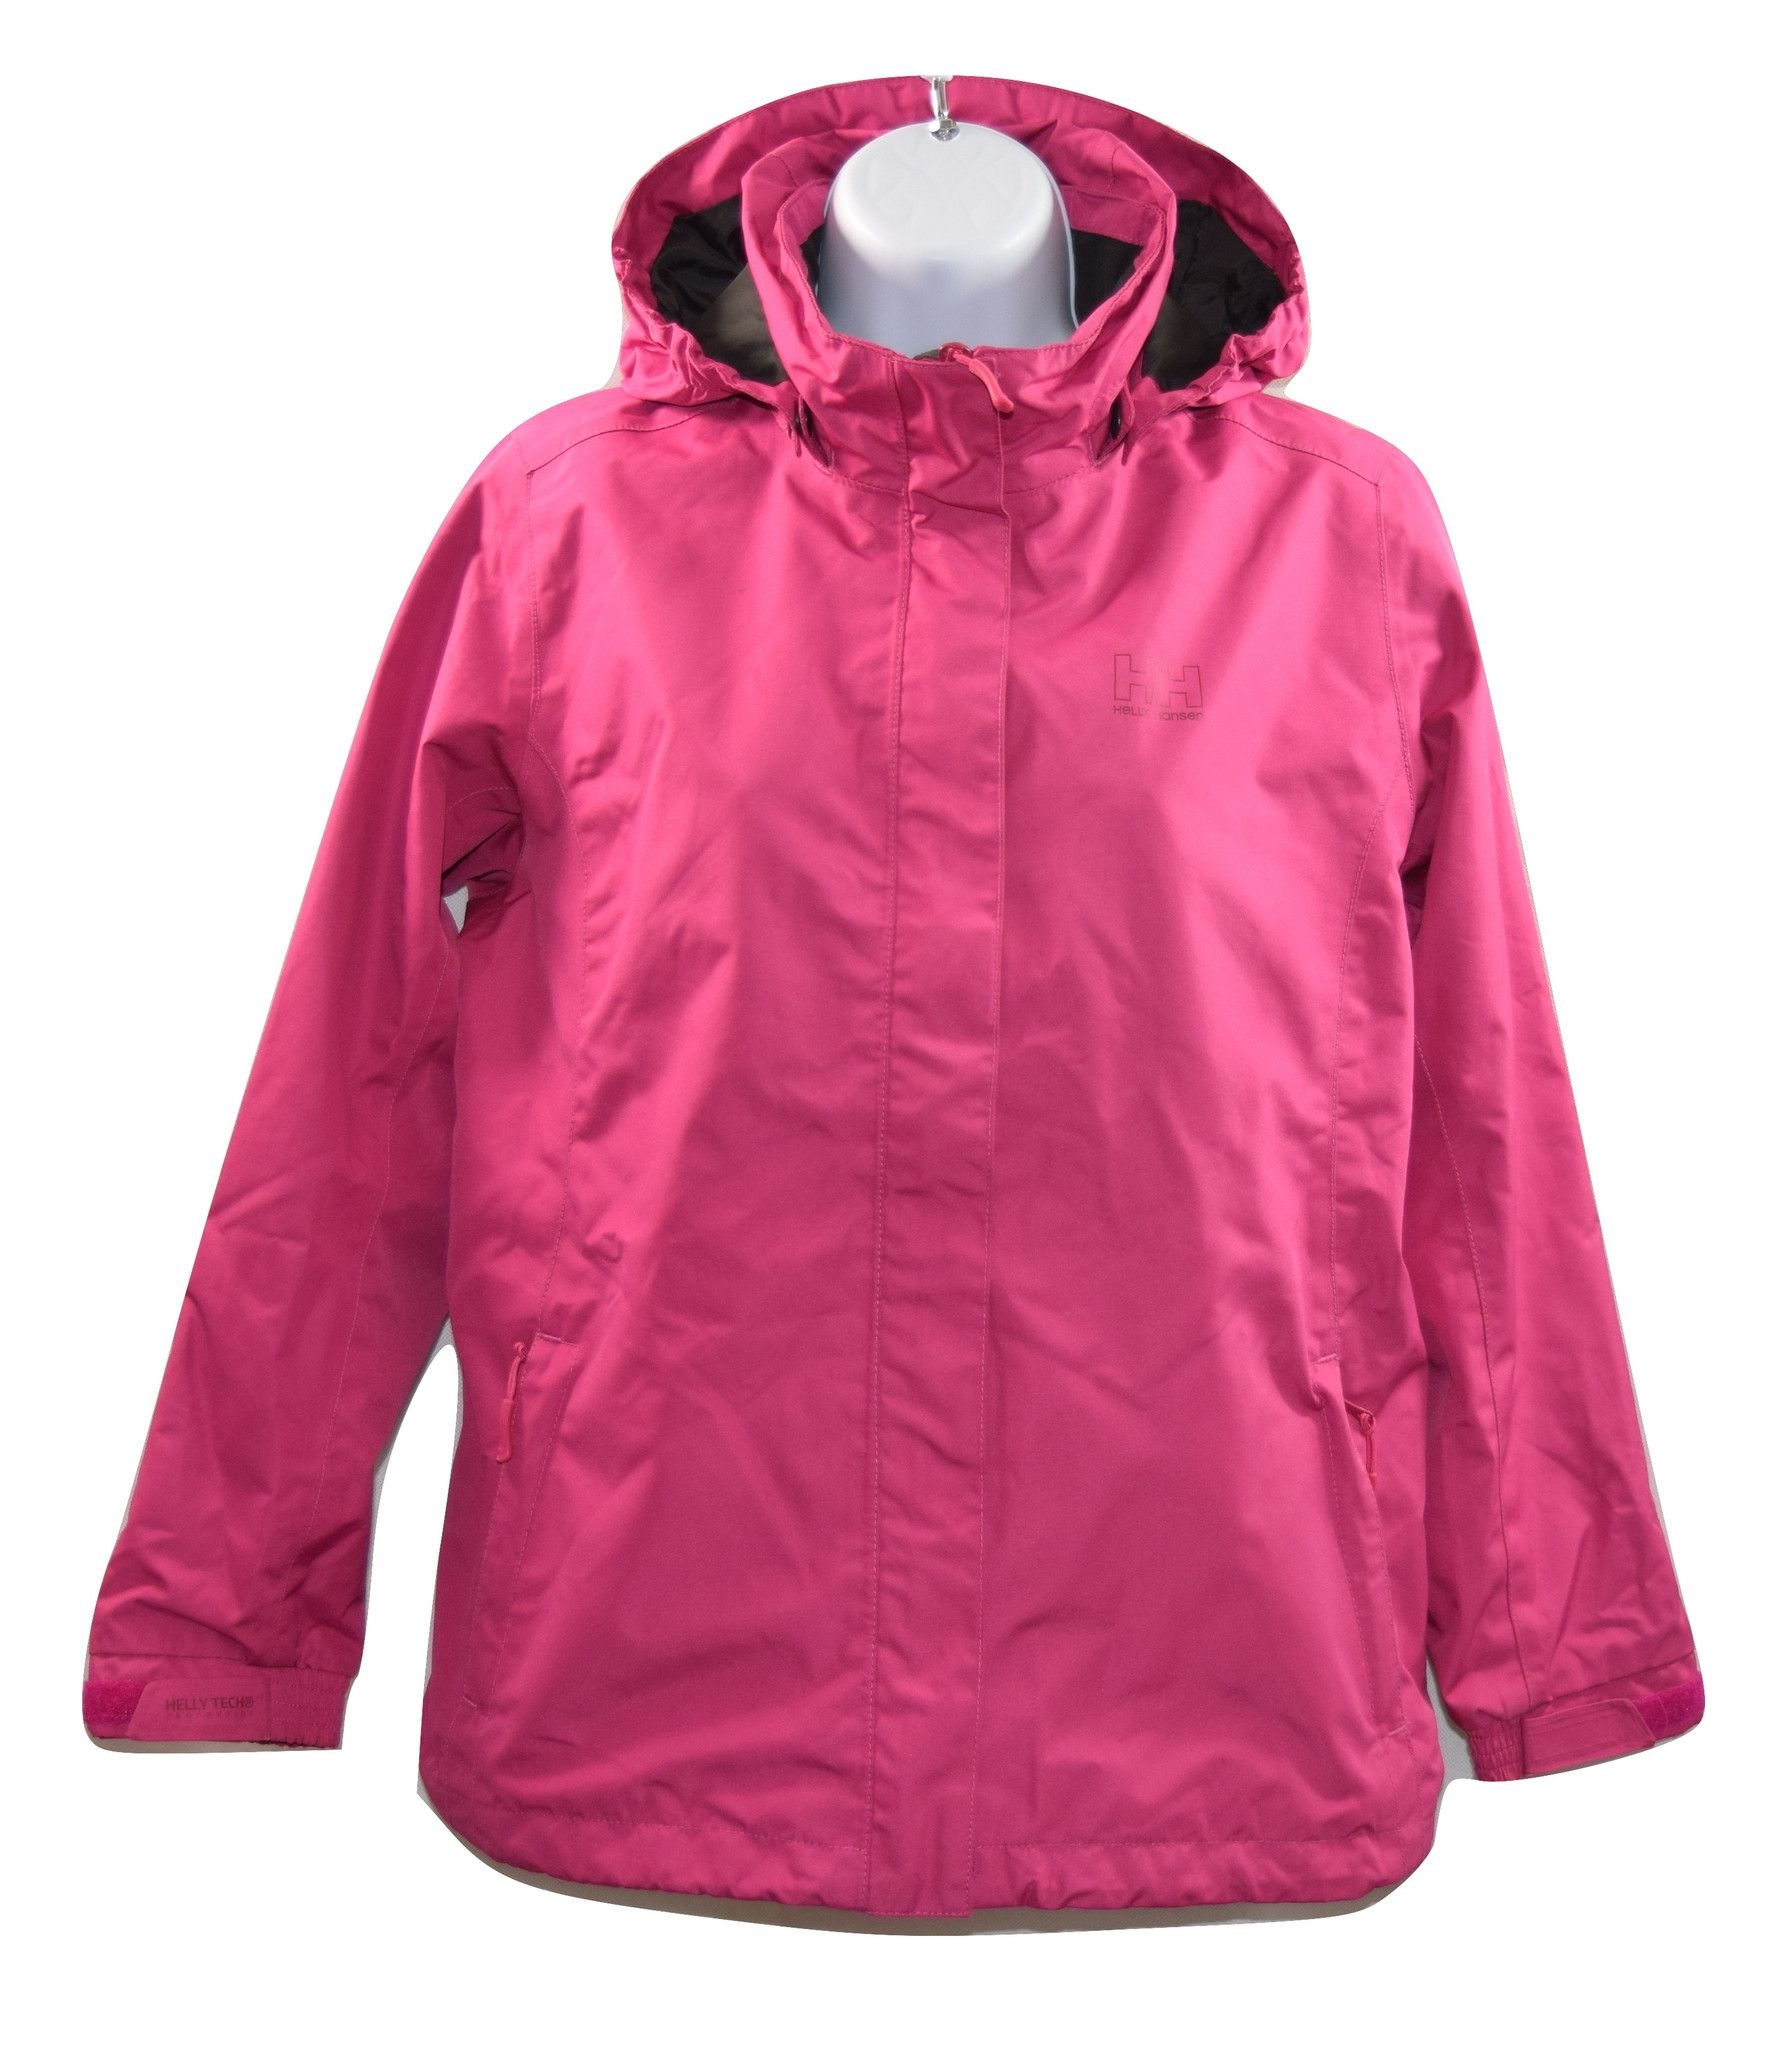 Now available on our store: Helly Hansen Pink... Check it our here! http://www.auraboxx.com/products/helly-hansen-pink-jacket?utm_campaign=social_autopilot&utm_source=pin&utm_medium=pin